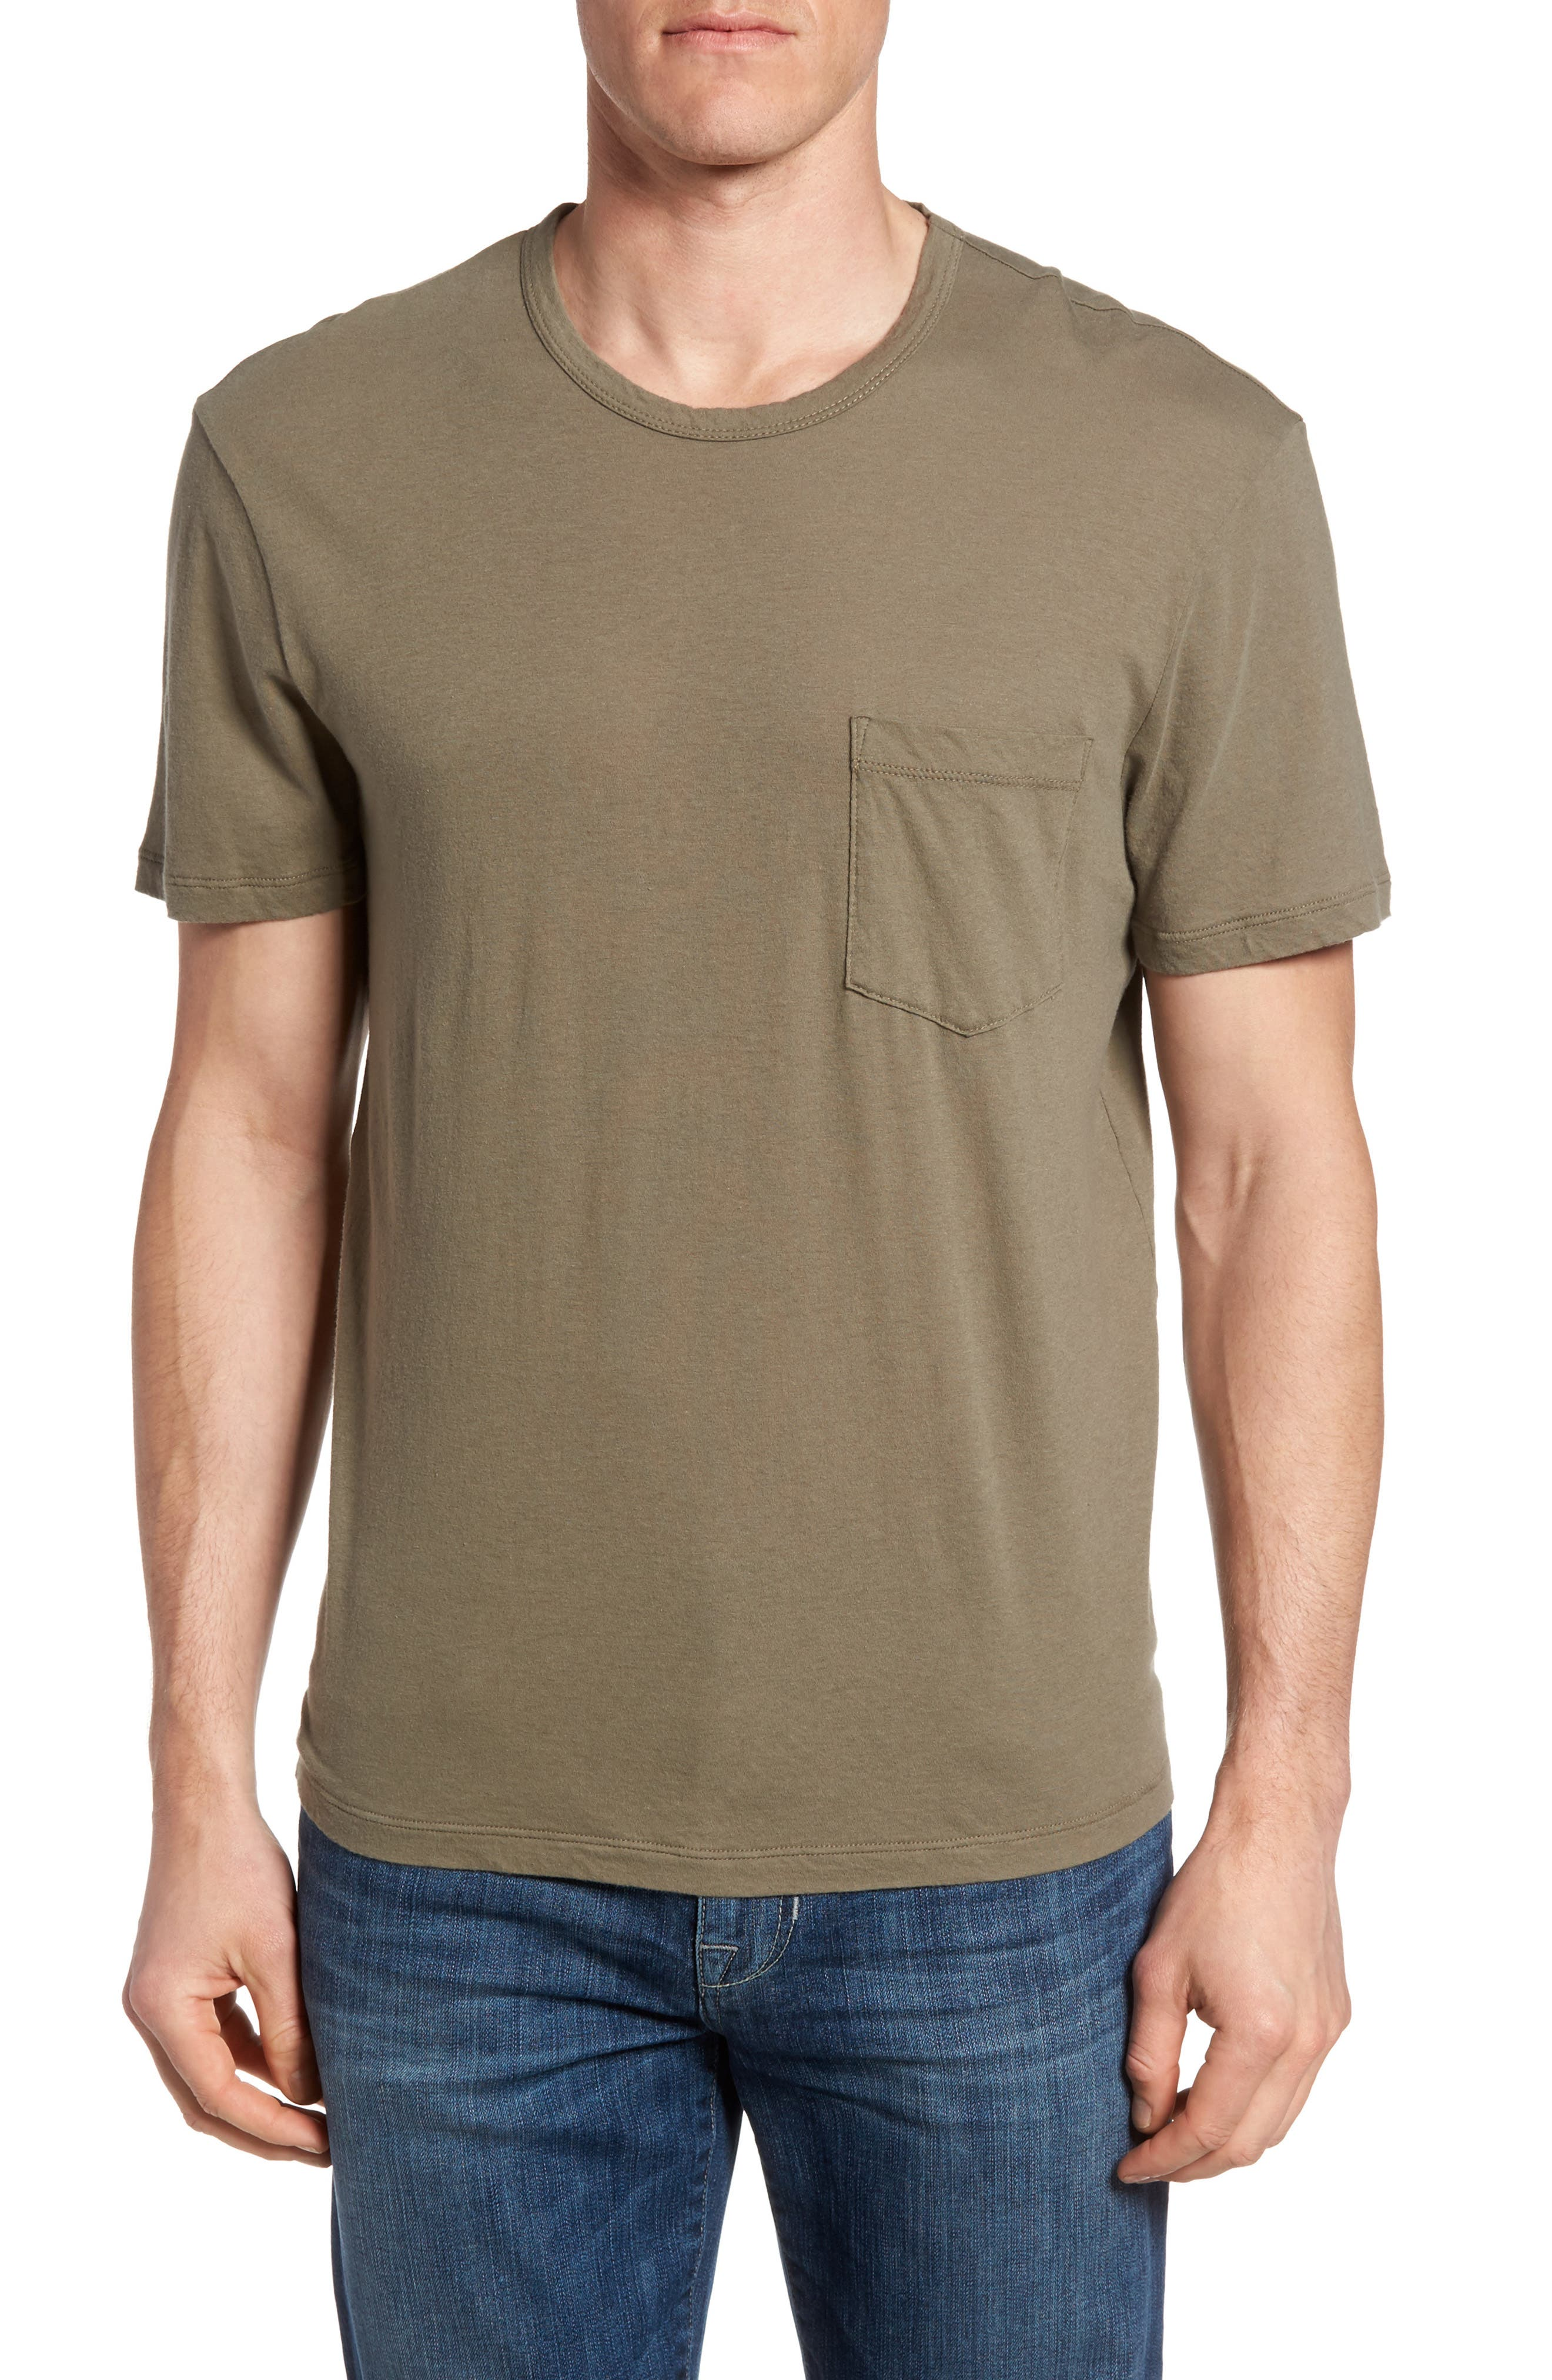 James Perse Pocket T-Shirt